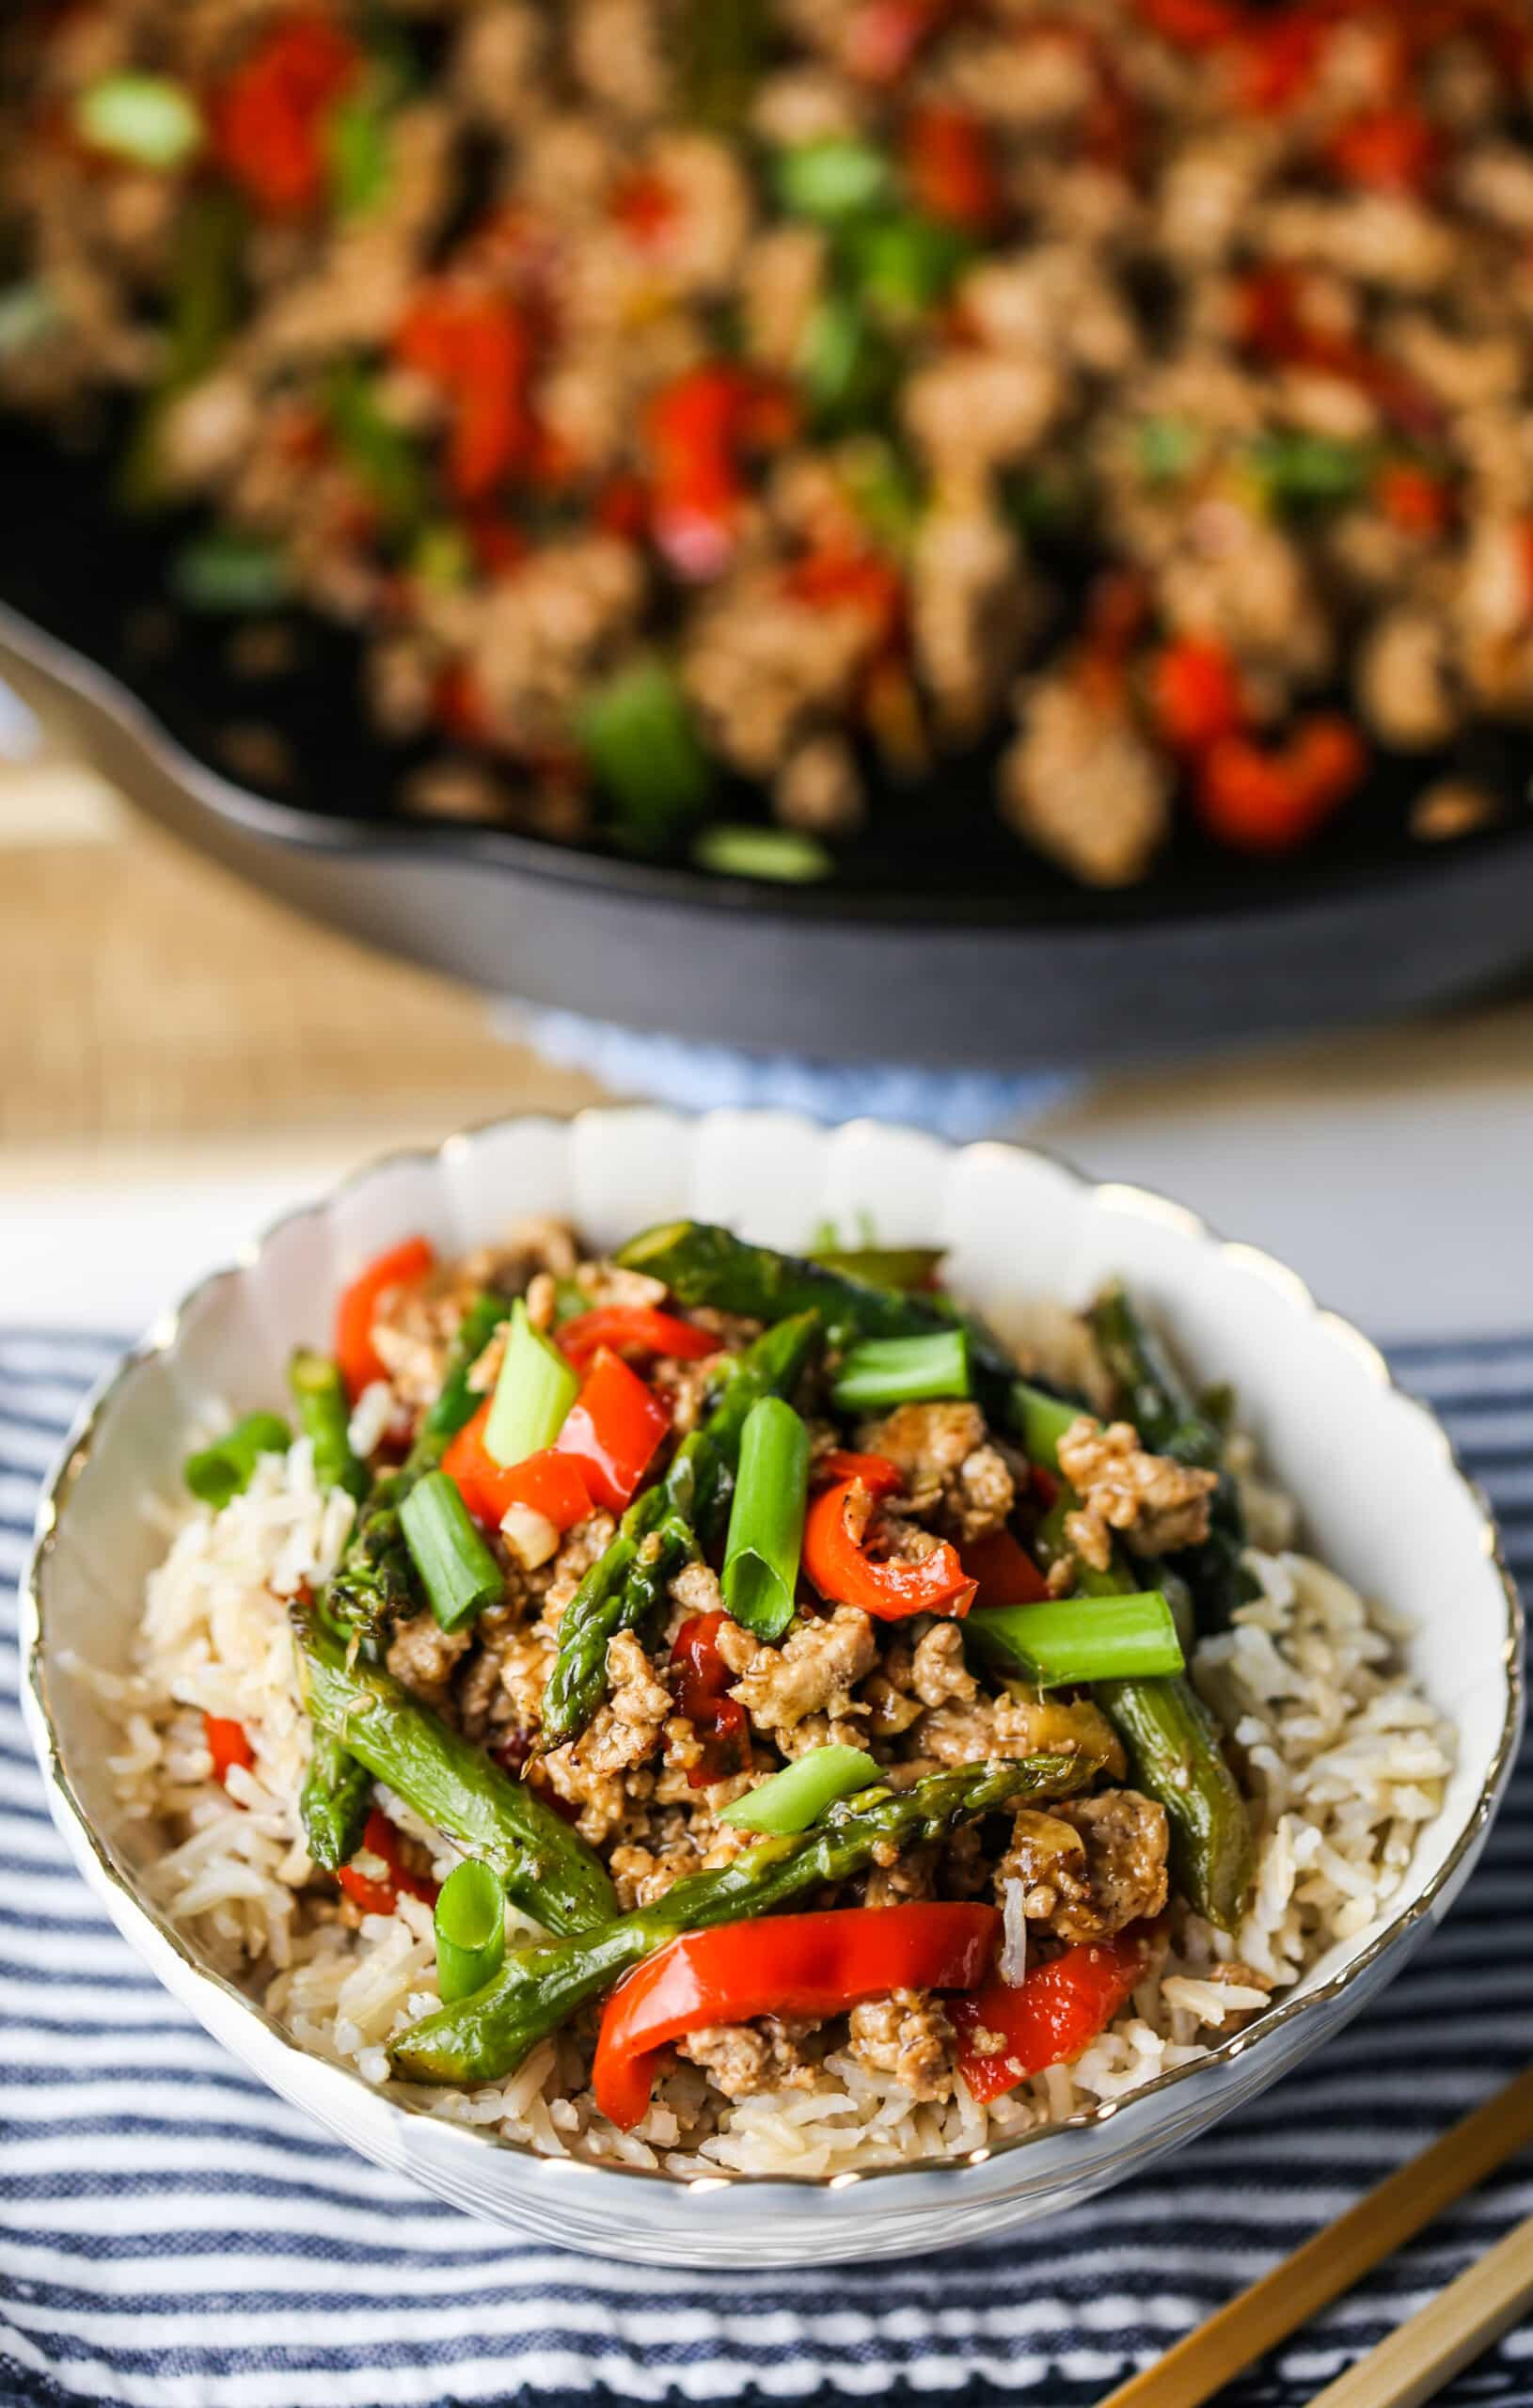 A top angle view of turkey asparagus stir-fry in a blue and white bowl and in a cast iron skillet.